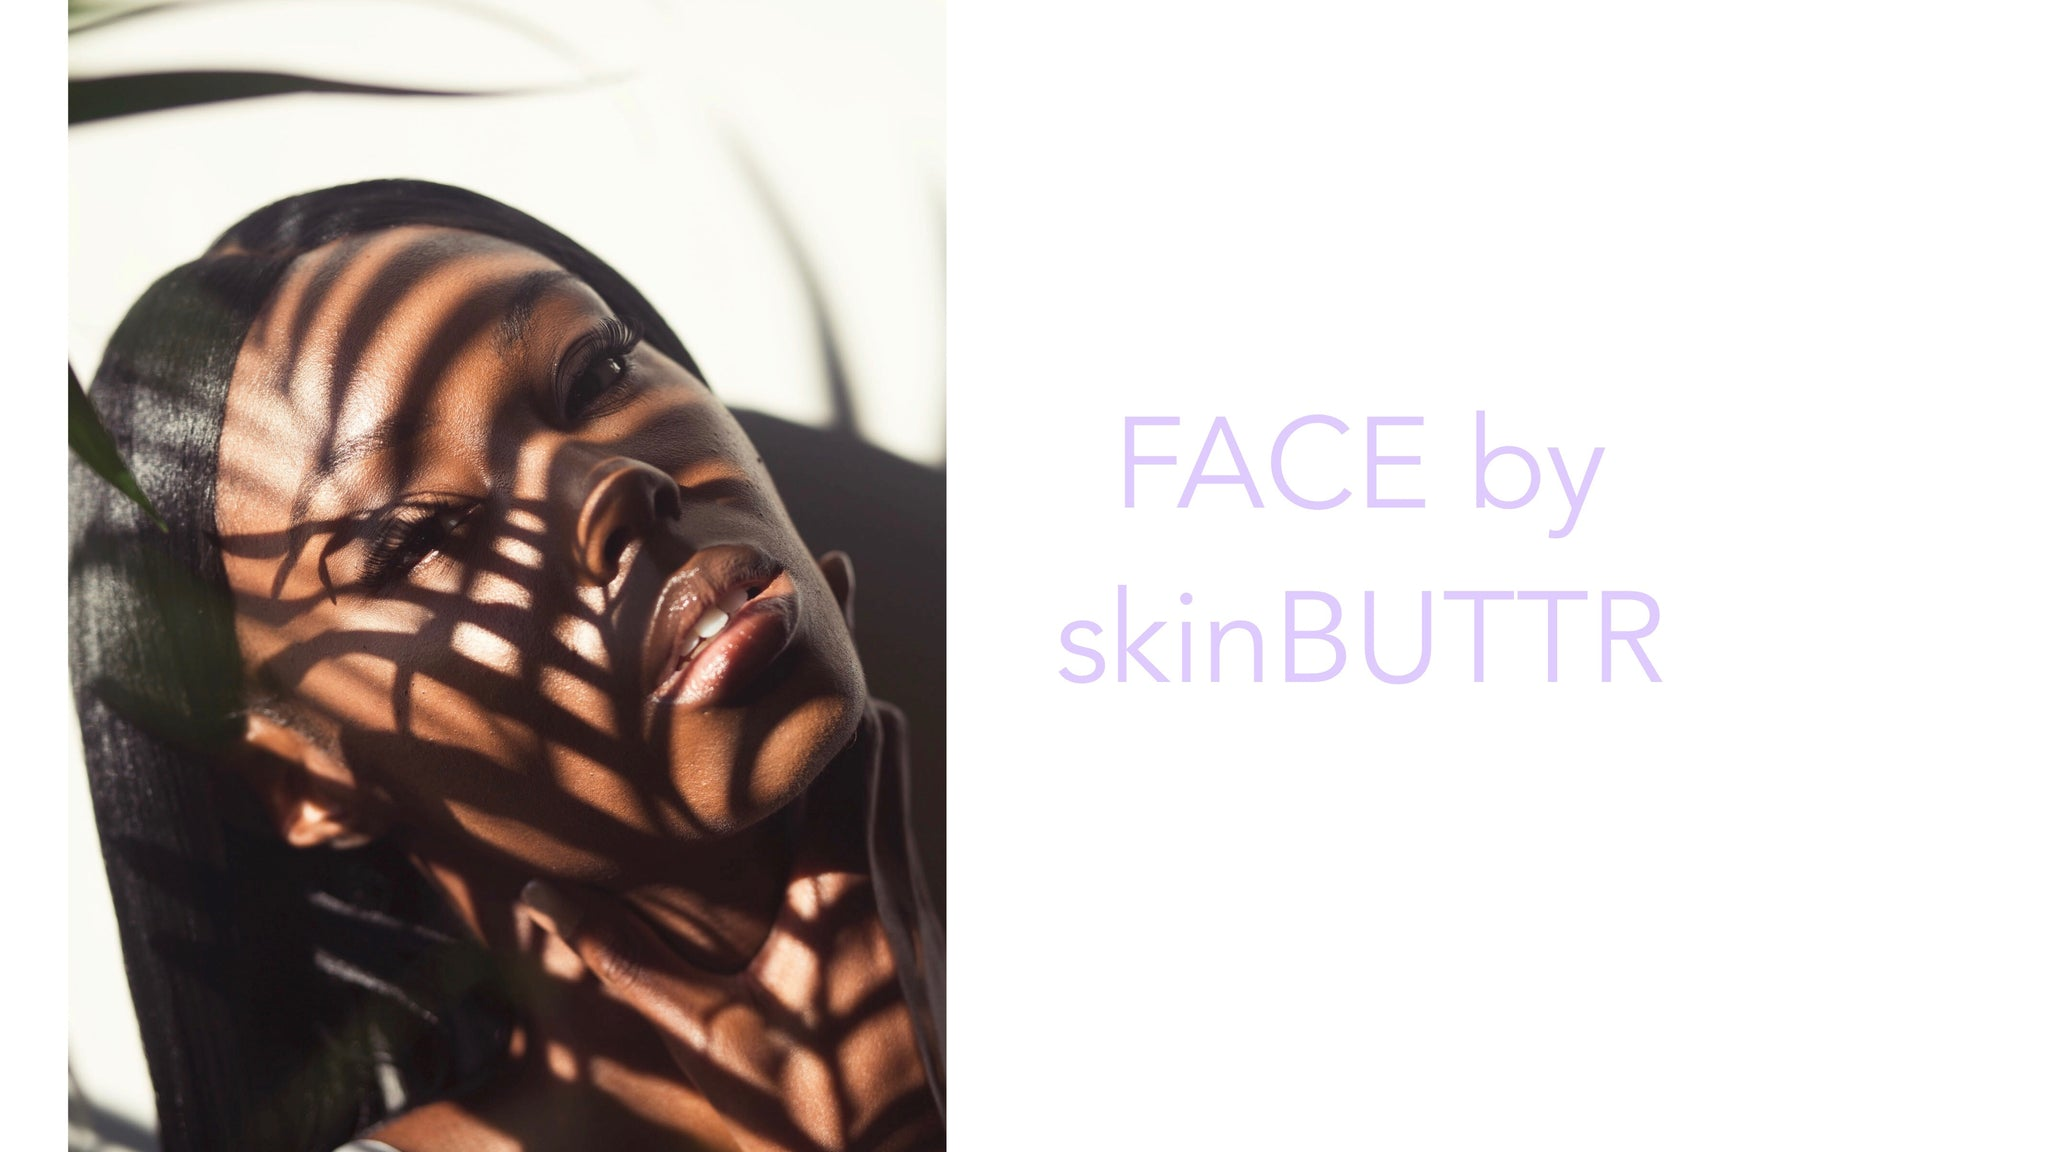 face by skinBUTTR